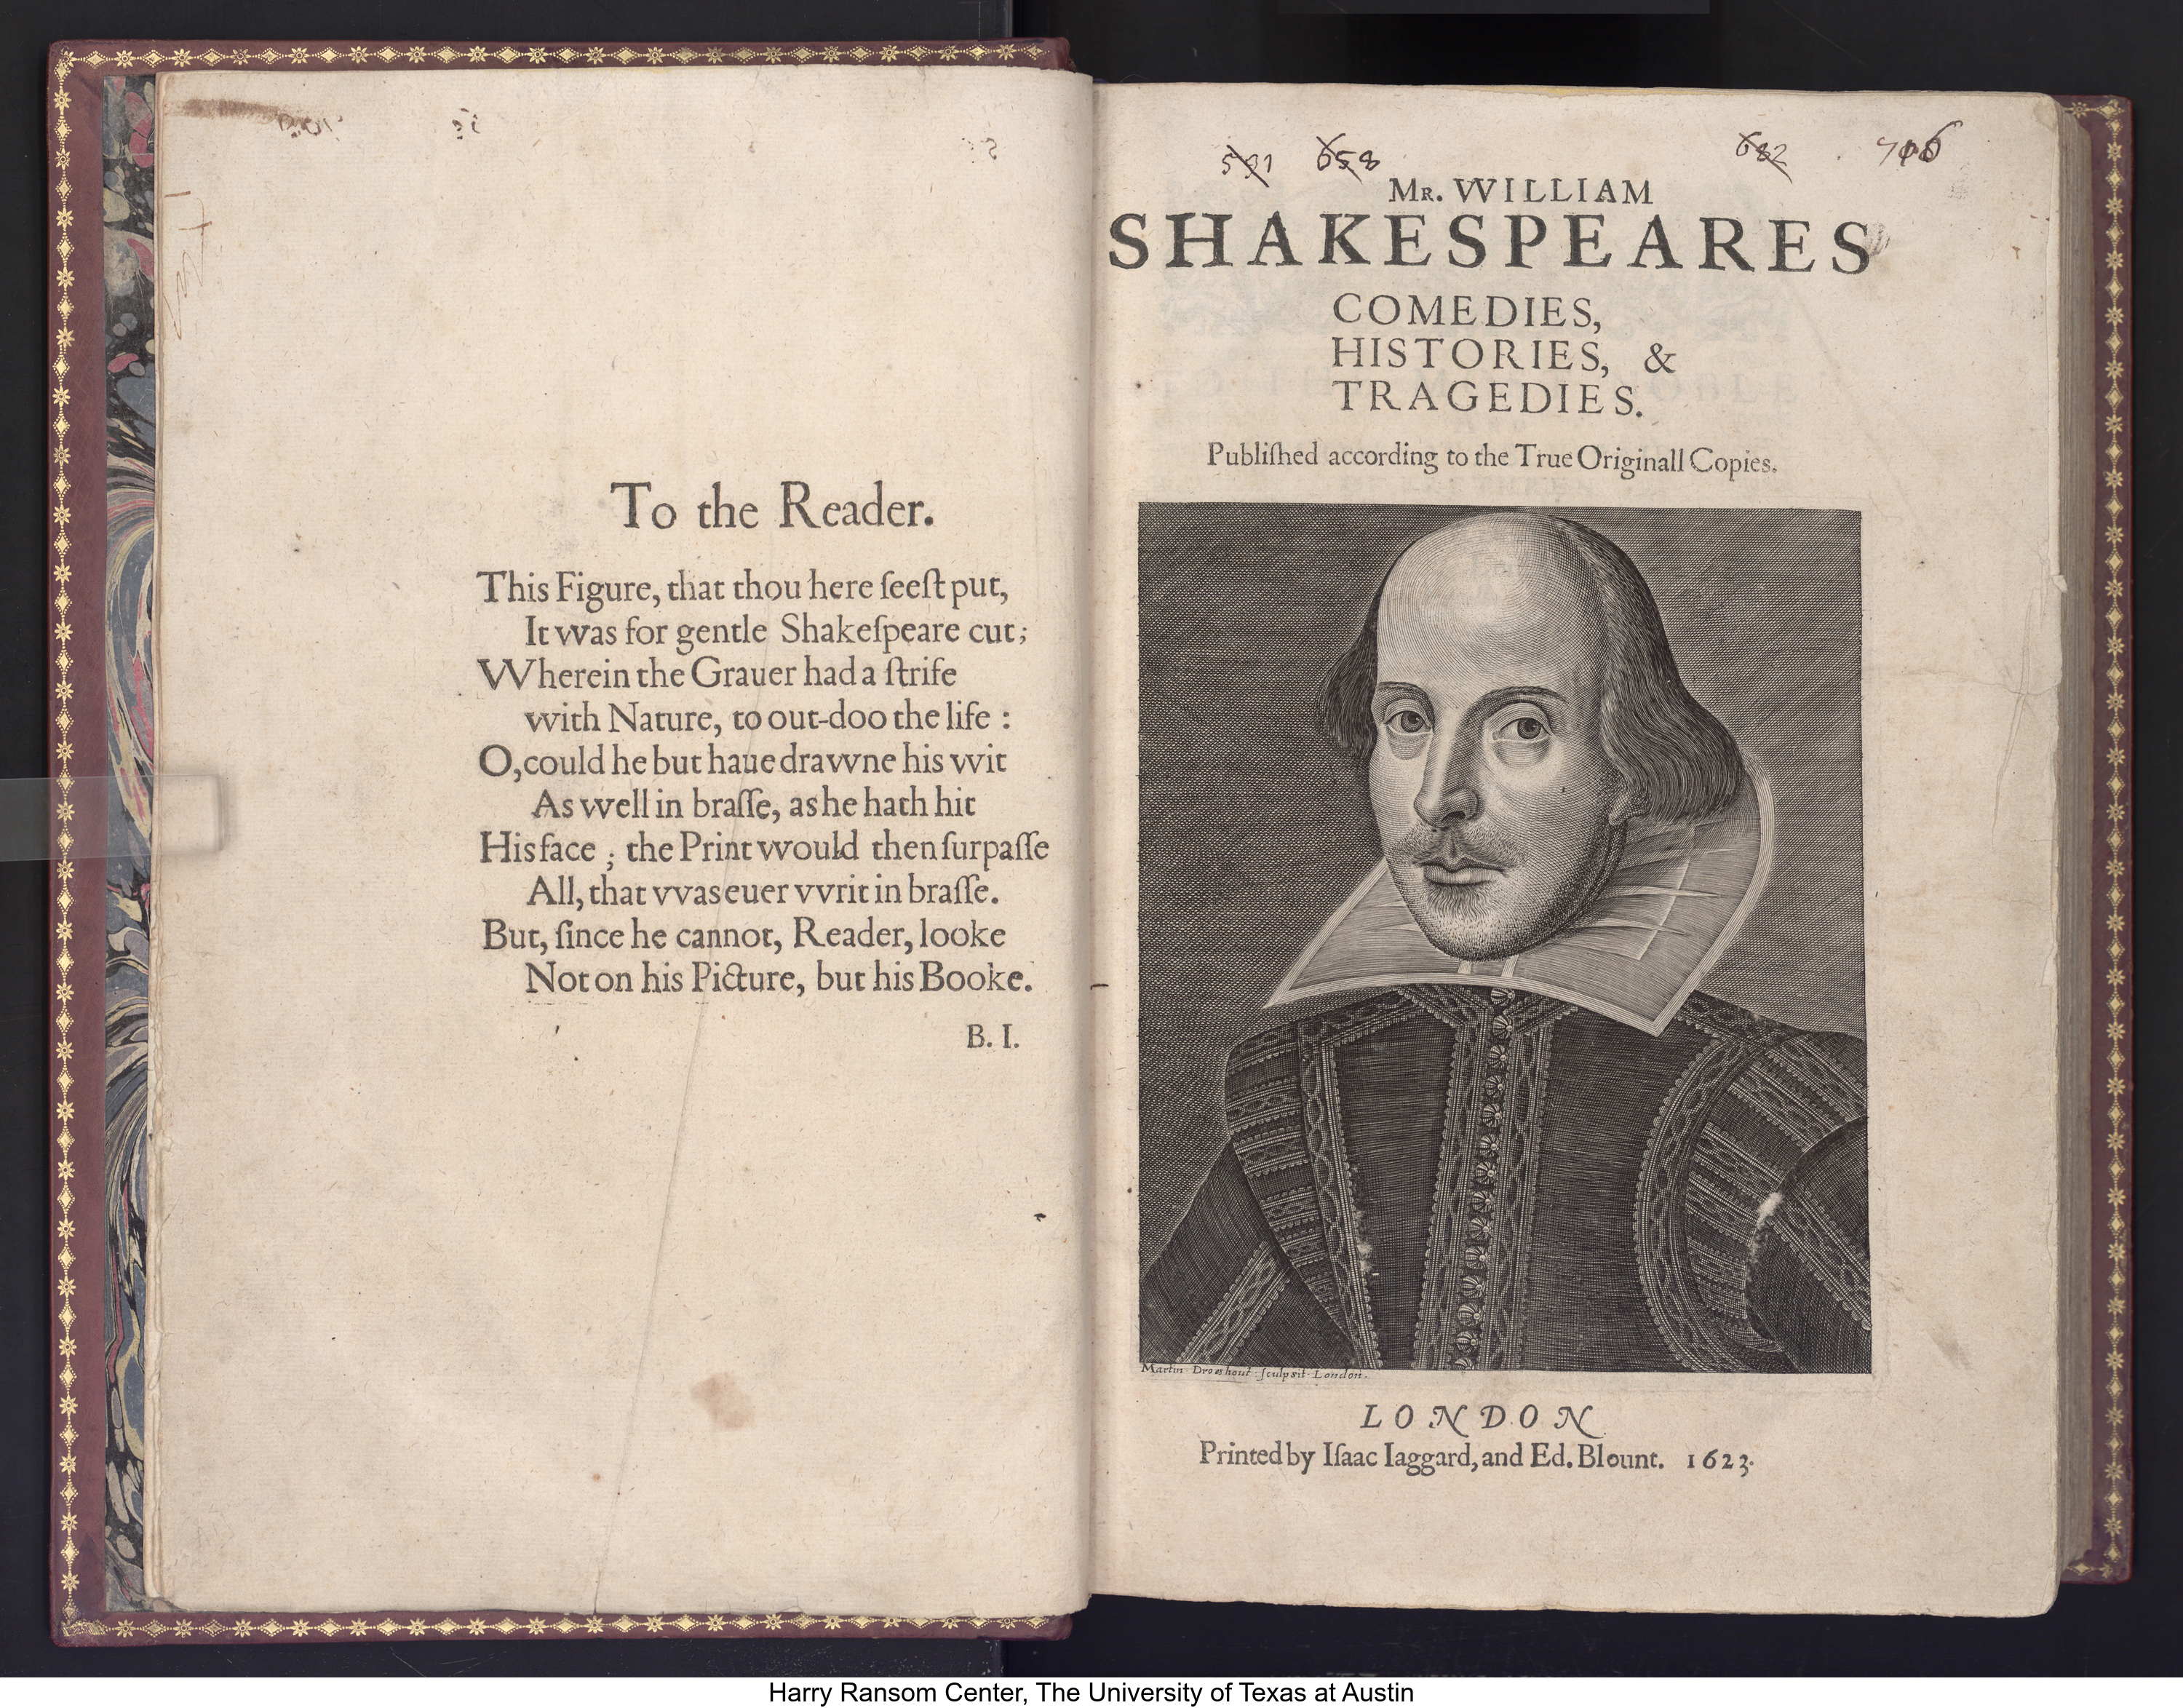 Explore Shakespeare's first folio online